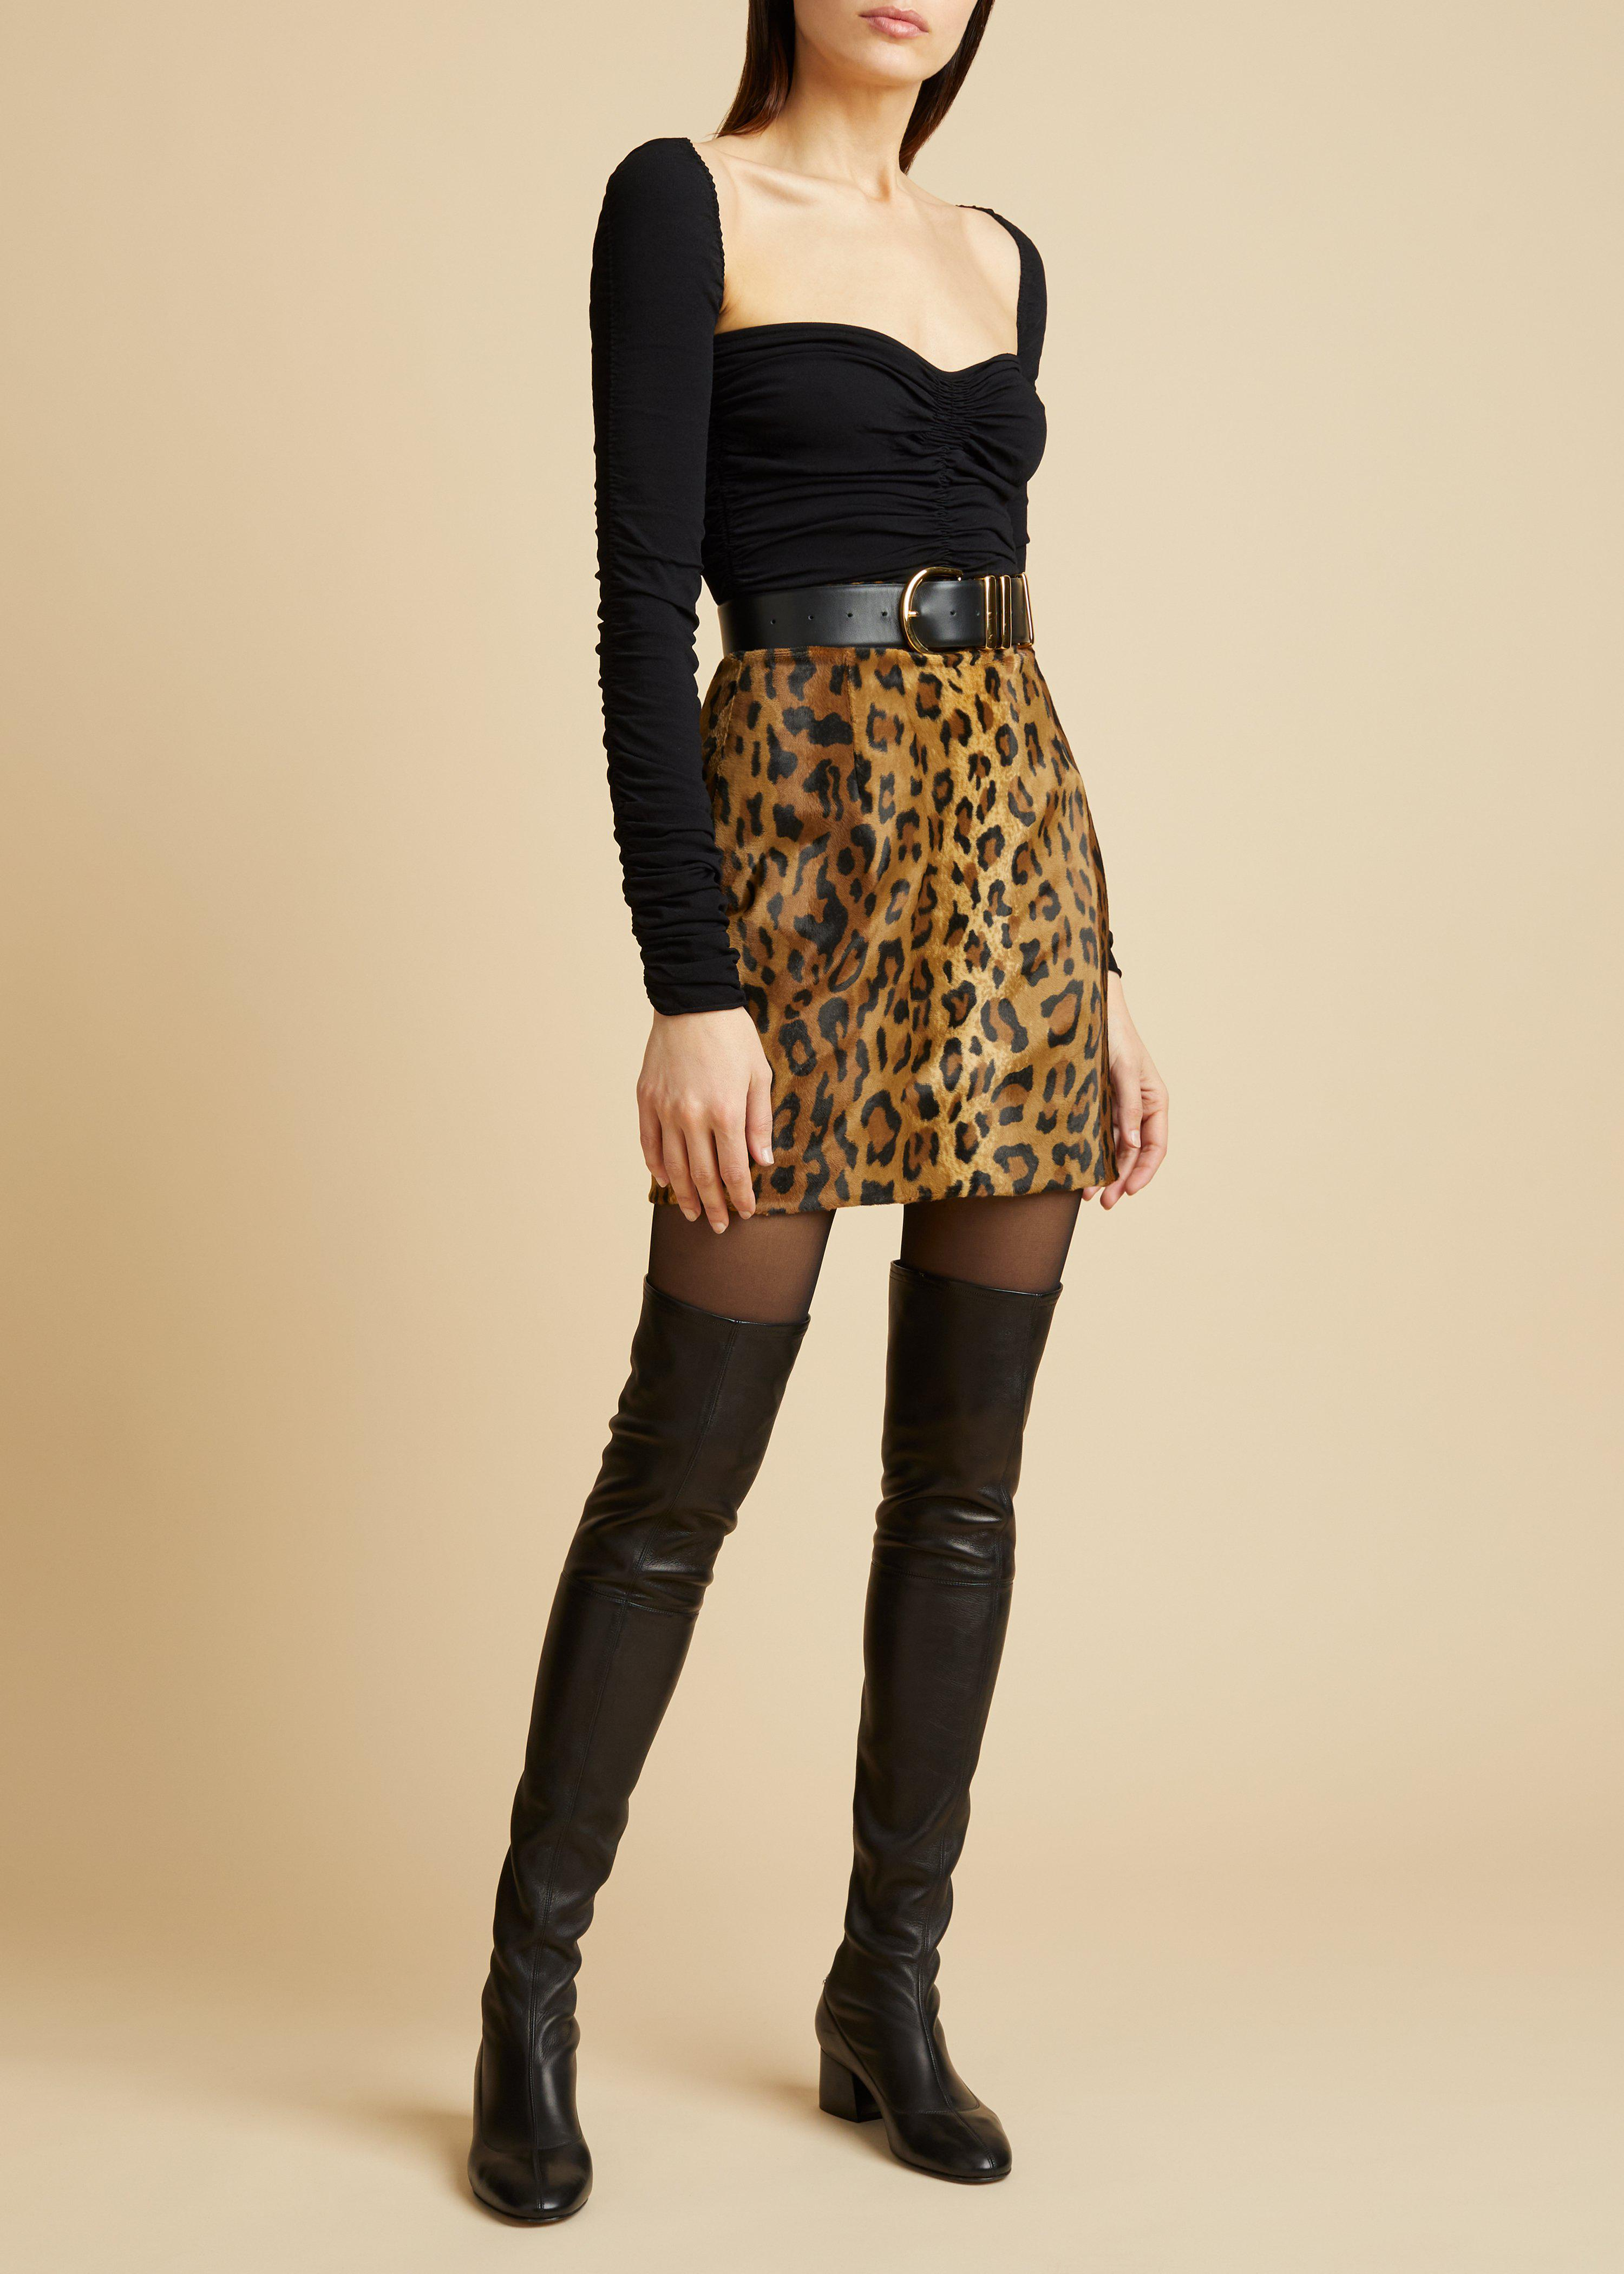 The Eiko Skirt in Cheetah Velvet